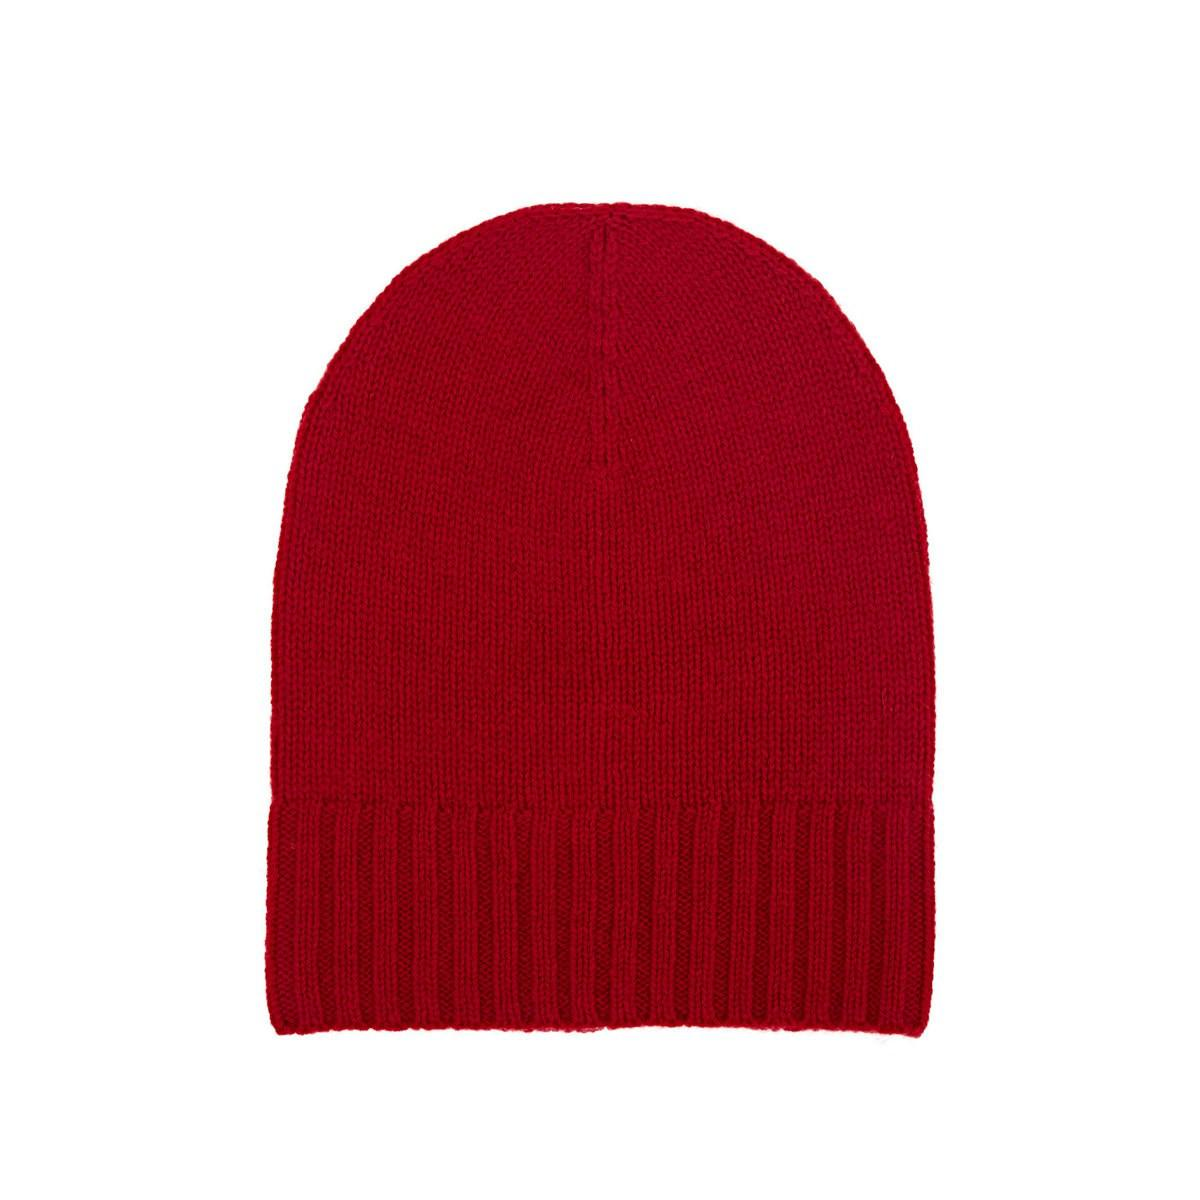 0f70dbb1791 Barneys New York Cashmere Hat in Red - Save 59% - Lyst